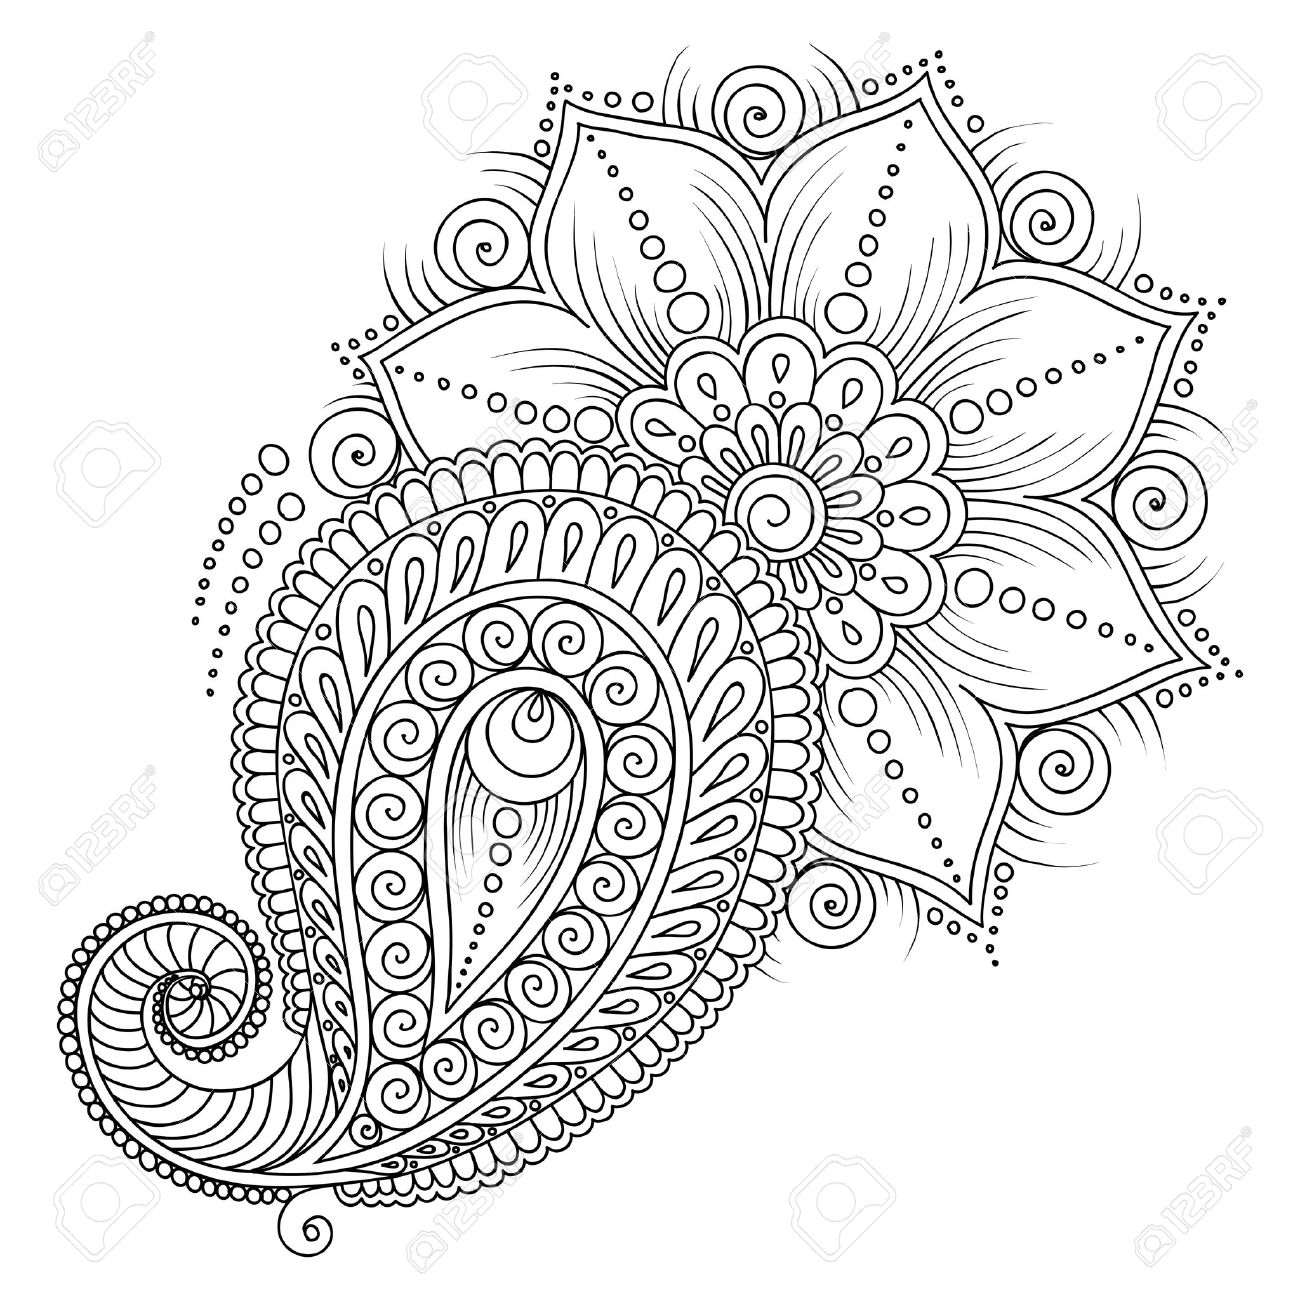 Pattern for coloring book. Coloring book pages for kids and adults.Vector abstract floral elements in indian style. Henna Mehndi Tattoo Style Doodles - 47645515